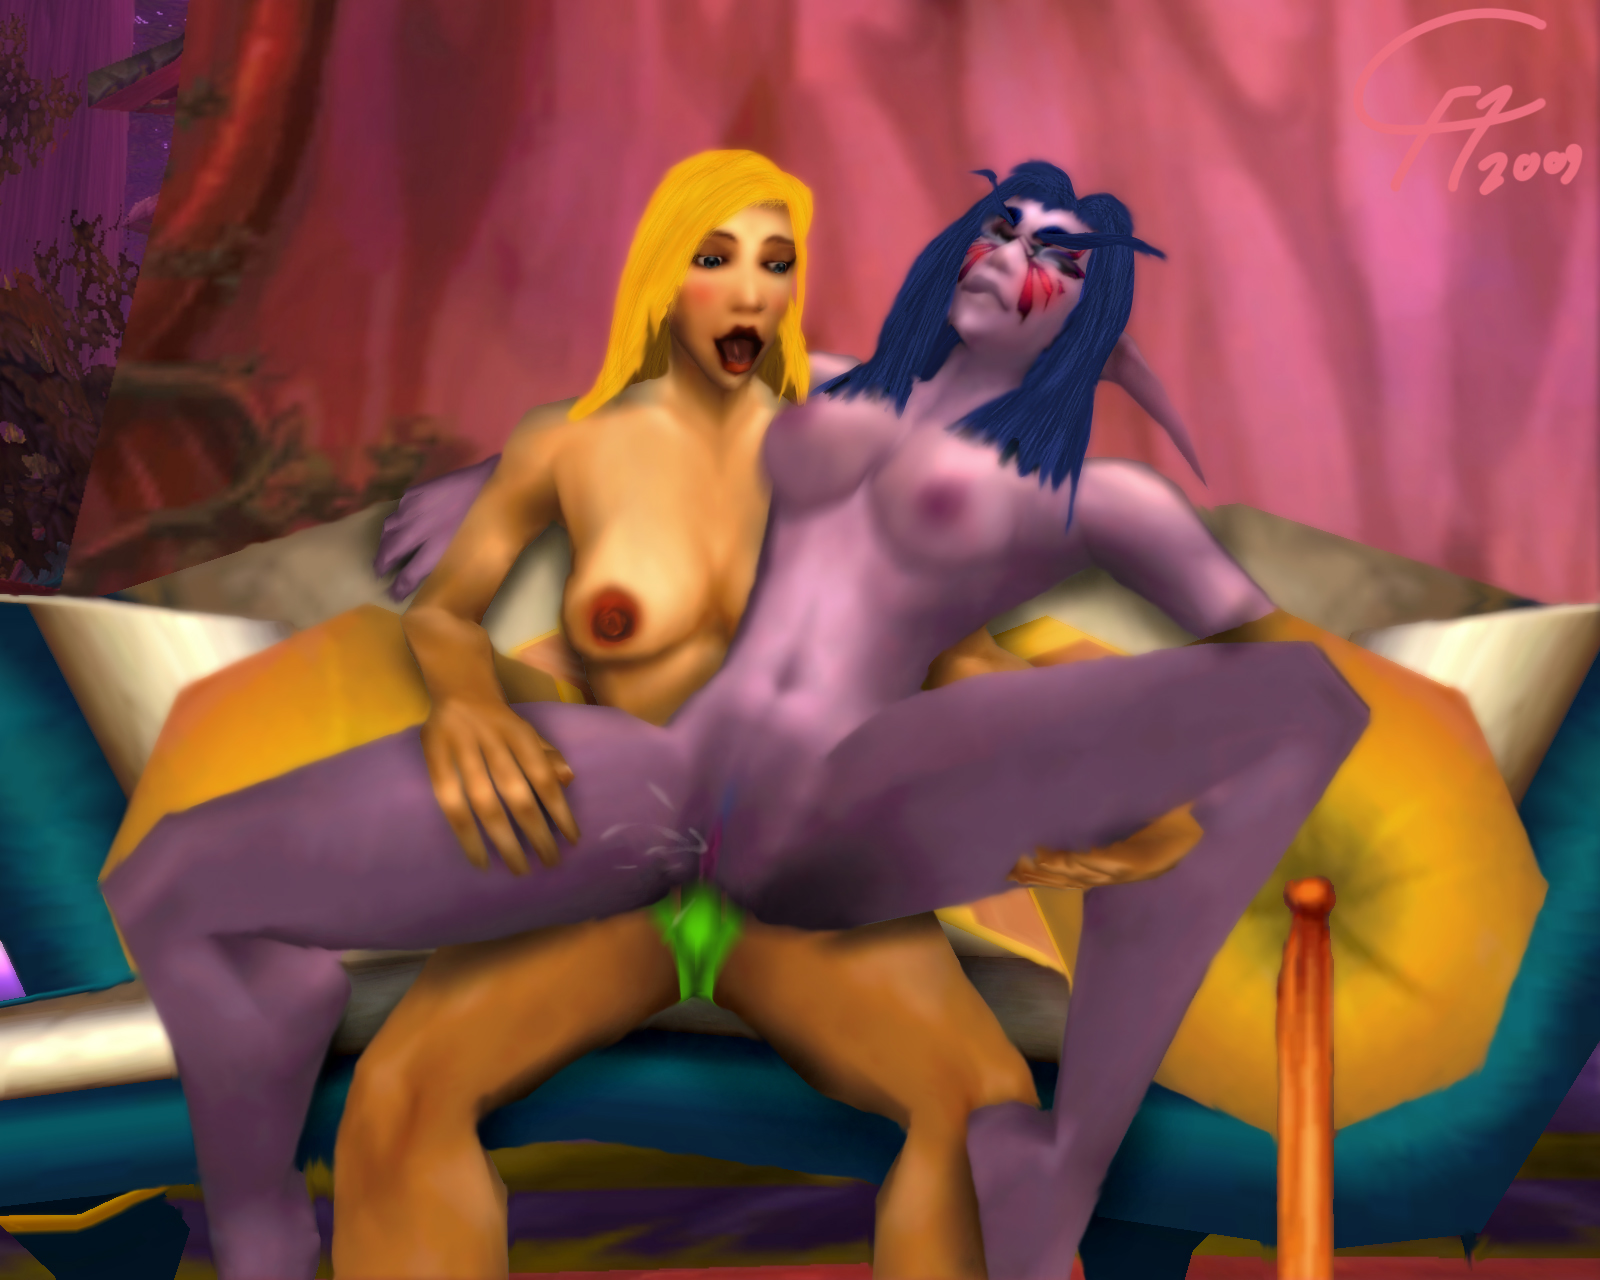 3d monster sex videos online streaming on  sexy pictures